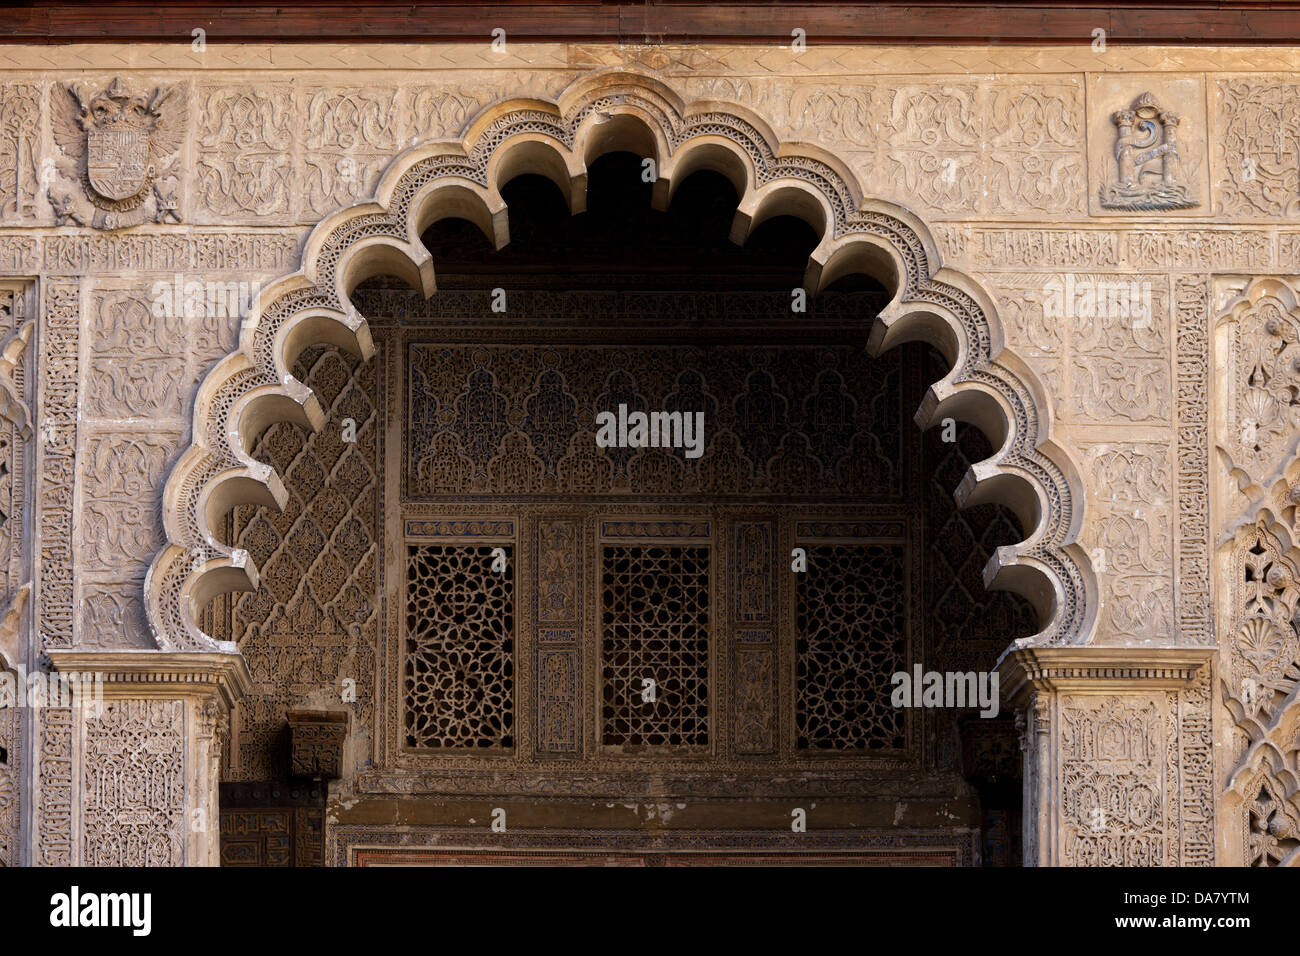 Mudejar style arch in the Patio de las Doncellas (Courtyard of the Maidens), Alcazar Palace of Seville, Andalusia, Stock Photo